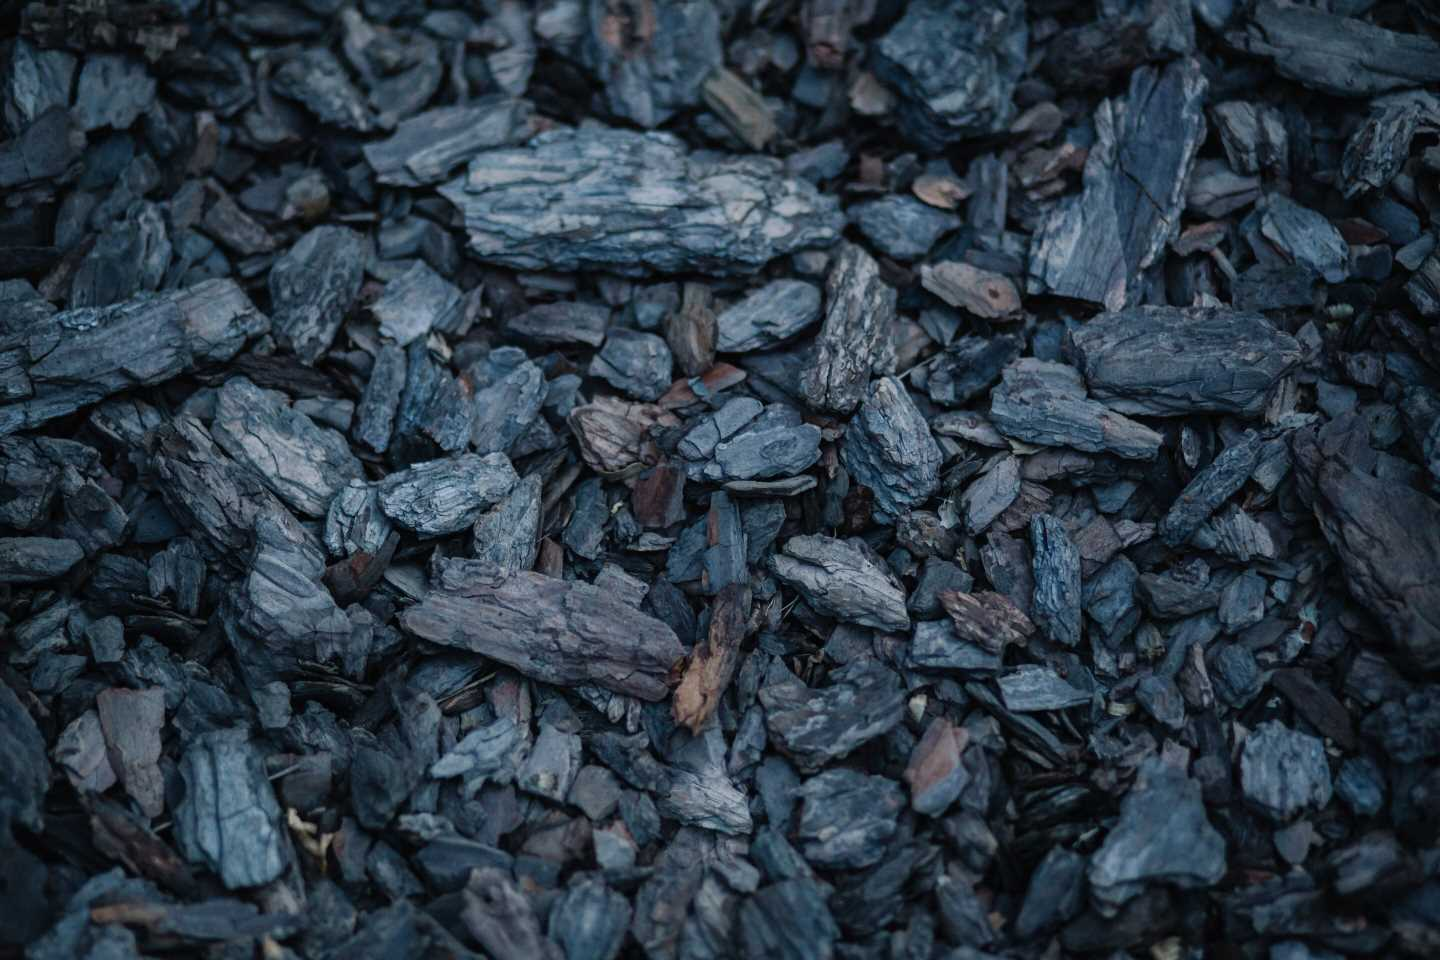 Cooking with coal or wood associated with increased risk of major eye diseases